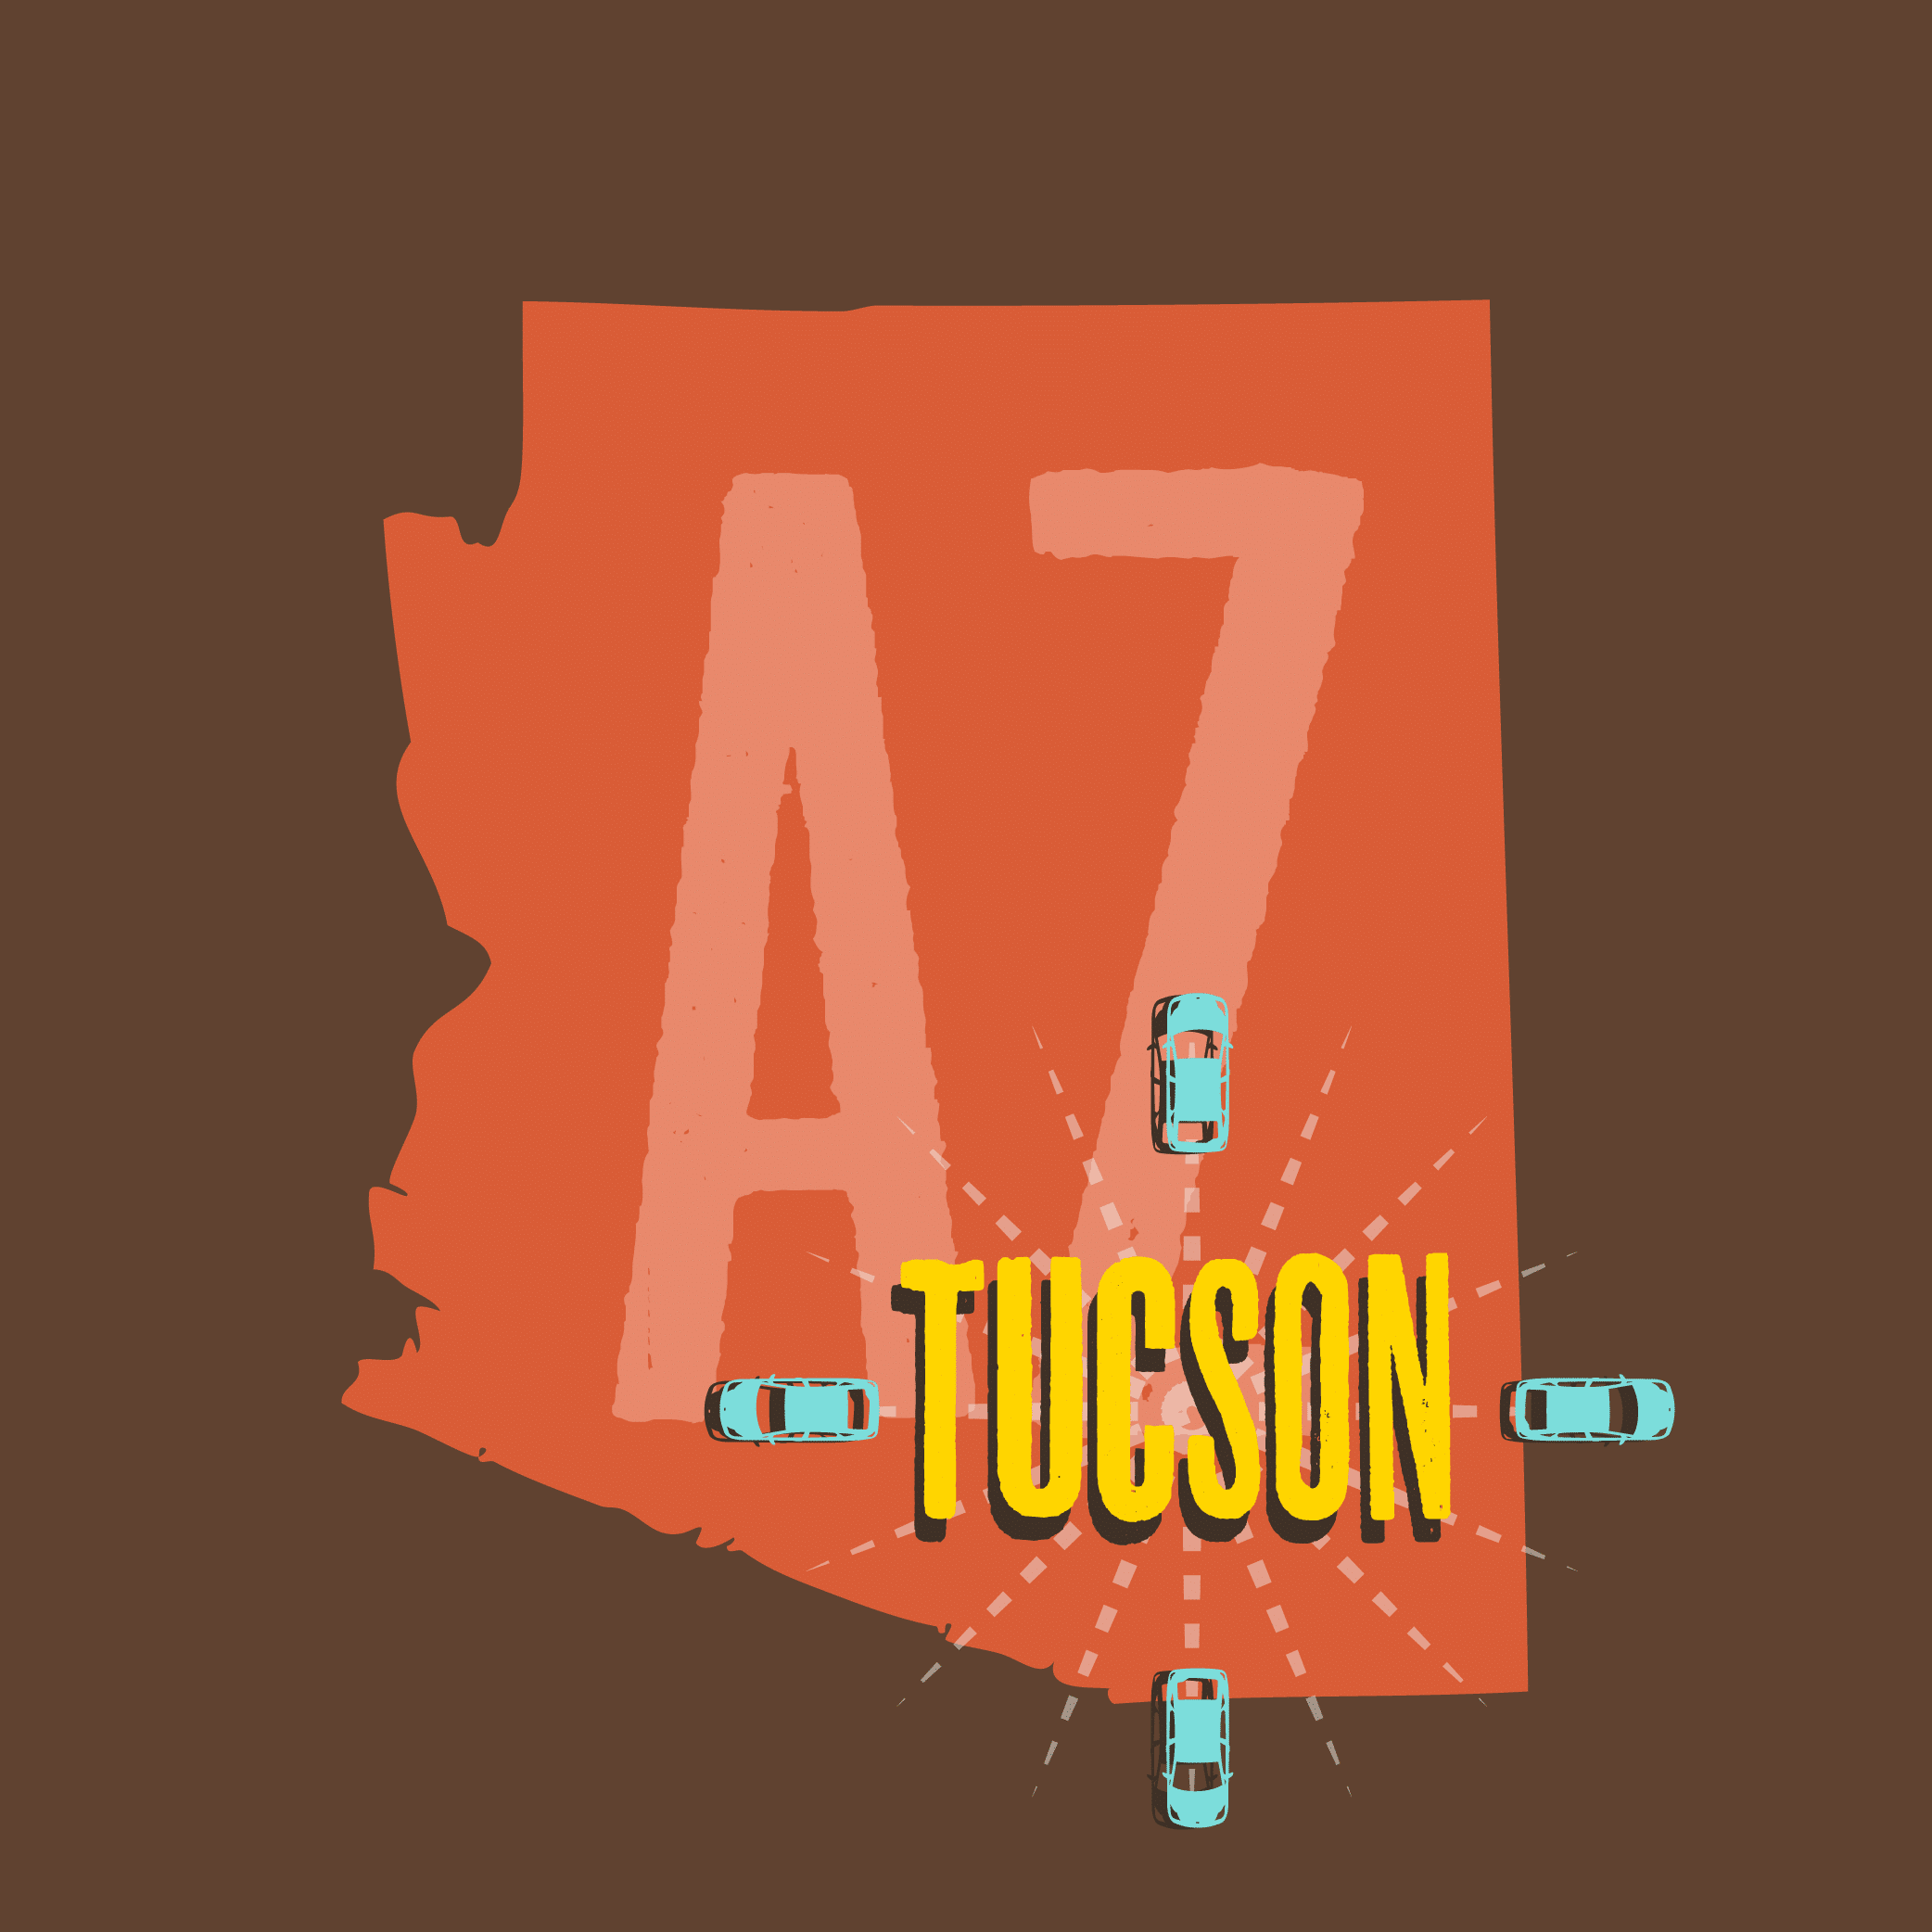 Illustration showing Arizona, featuring Tucson day trips.